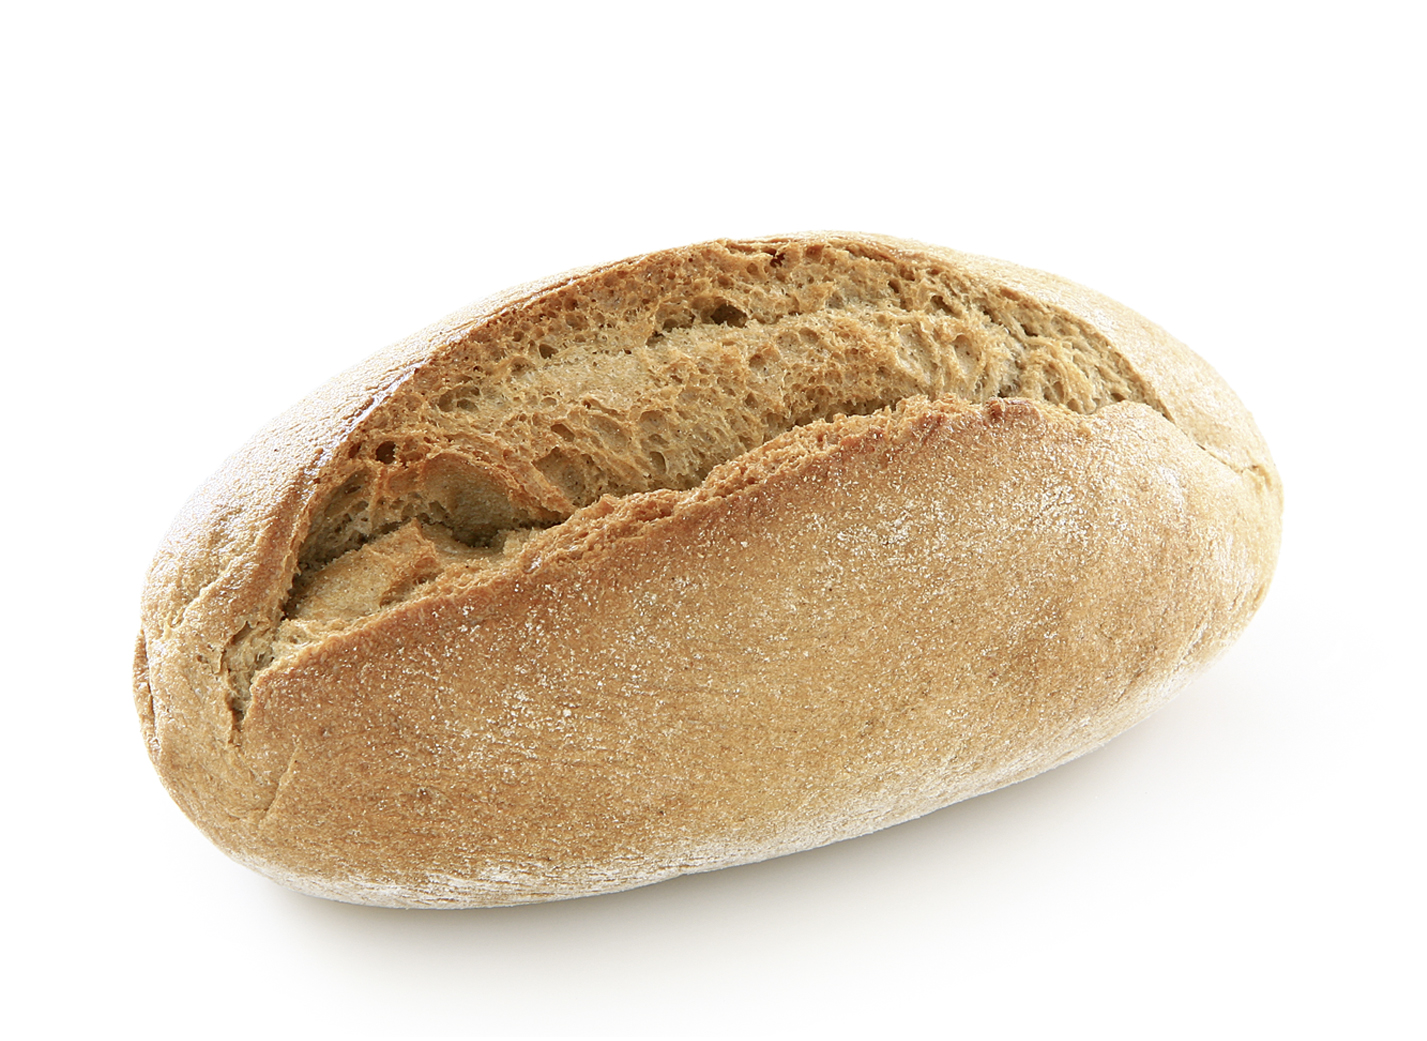 Rye Roll - Small wheat bakery with 6% rye flour